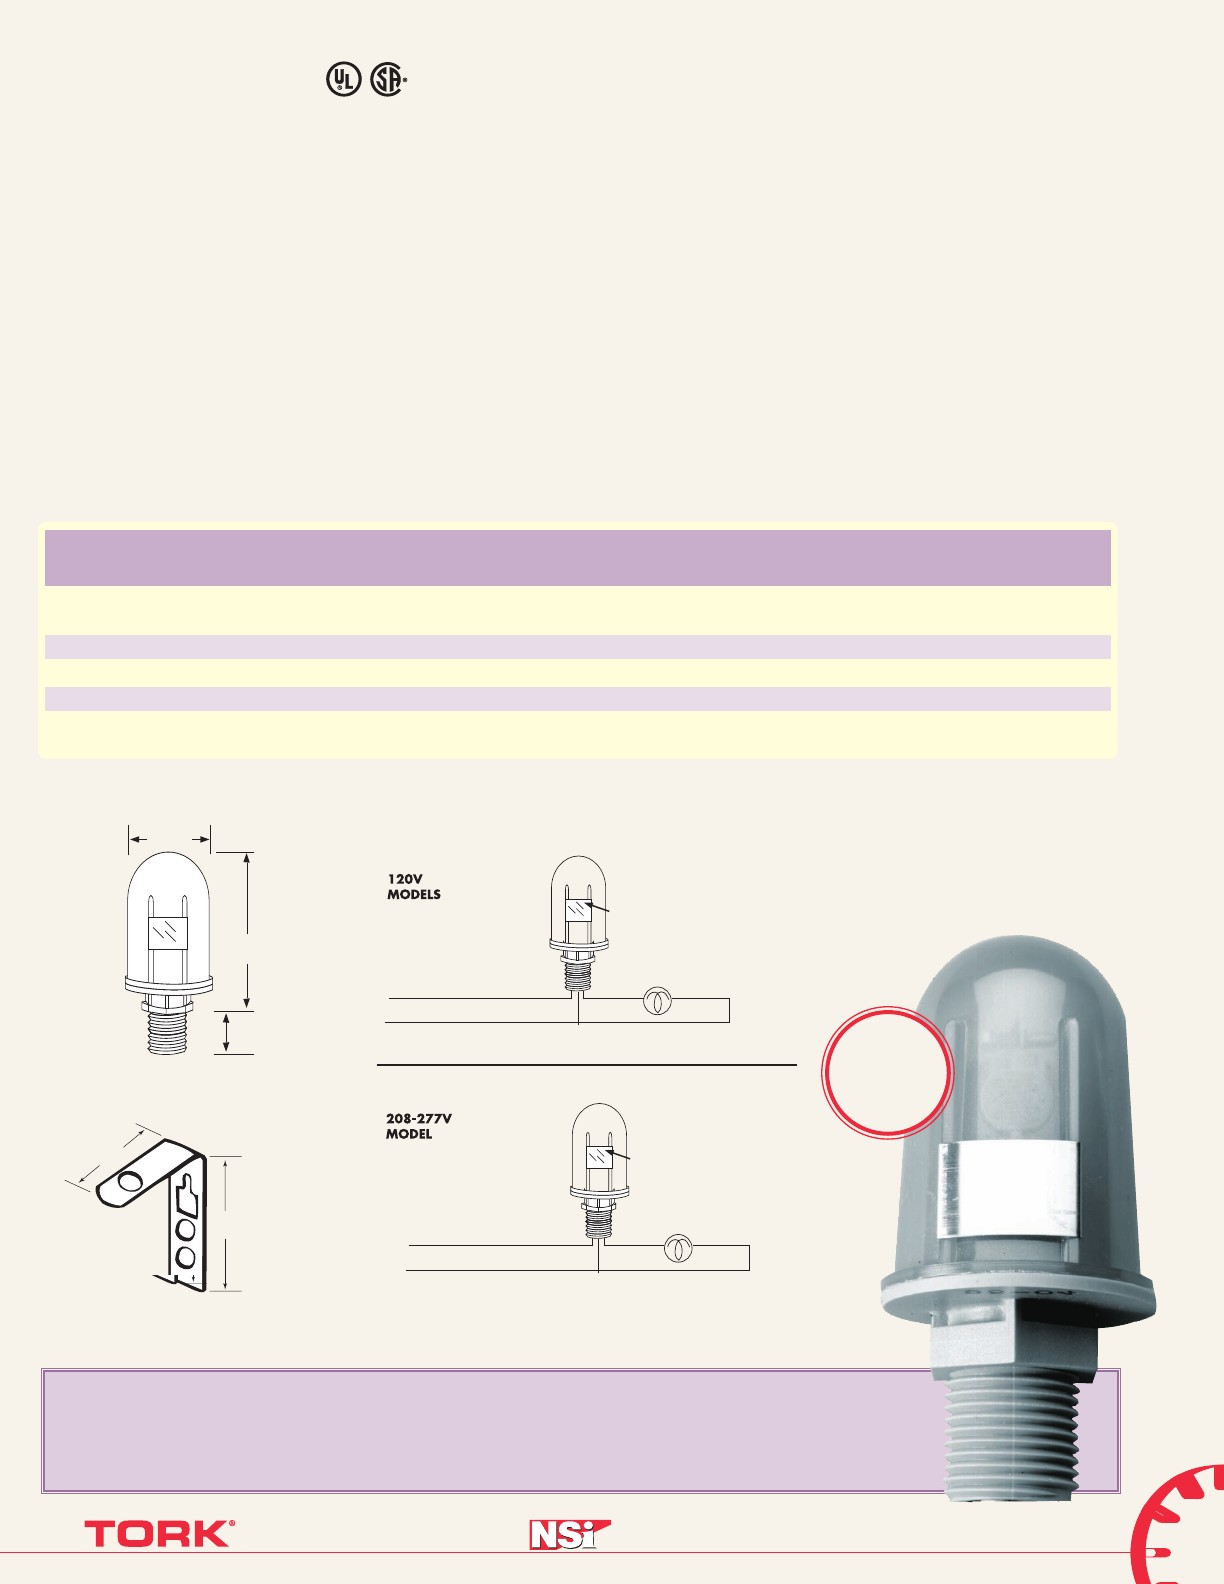 Tork Wiring Schematic for Lighting Contactor and Photocell Catalog Of Tork Wiring Schematic for Lighting Contactor and Photocell Lighting Time Clock Wiring Diagram Probleme Audi A4 Voyant